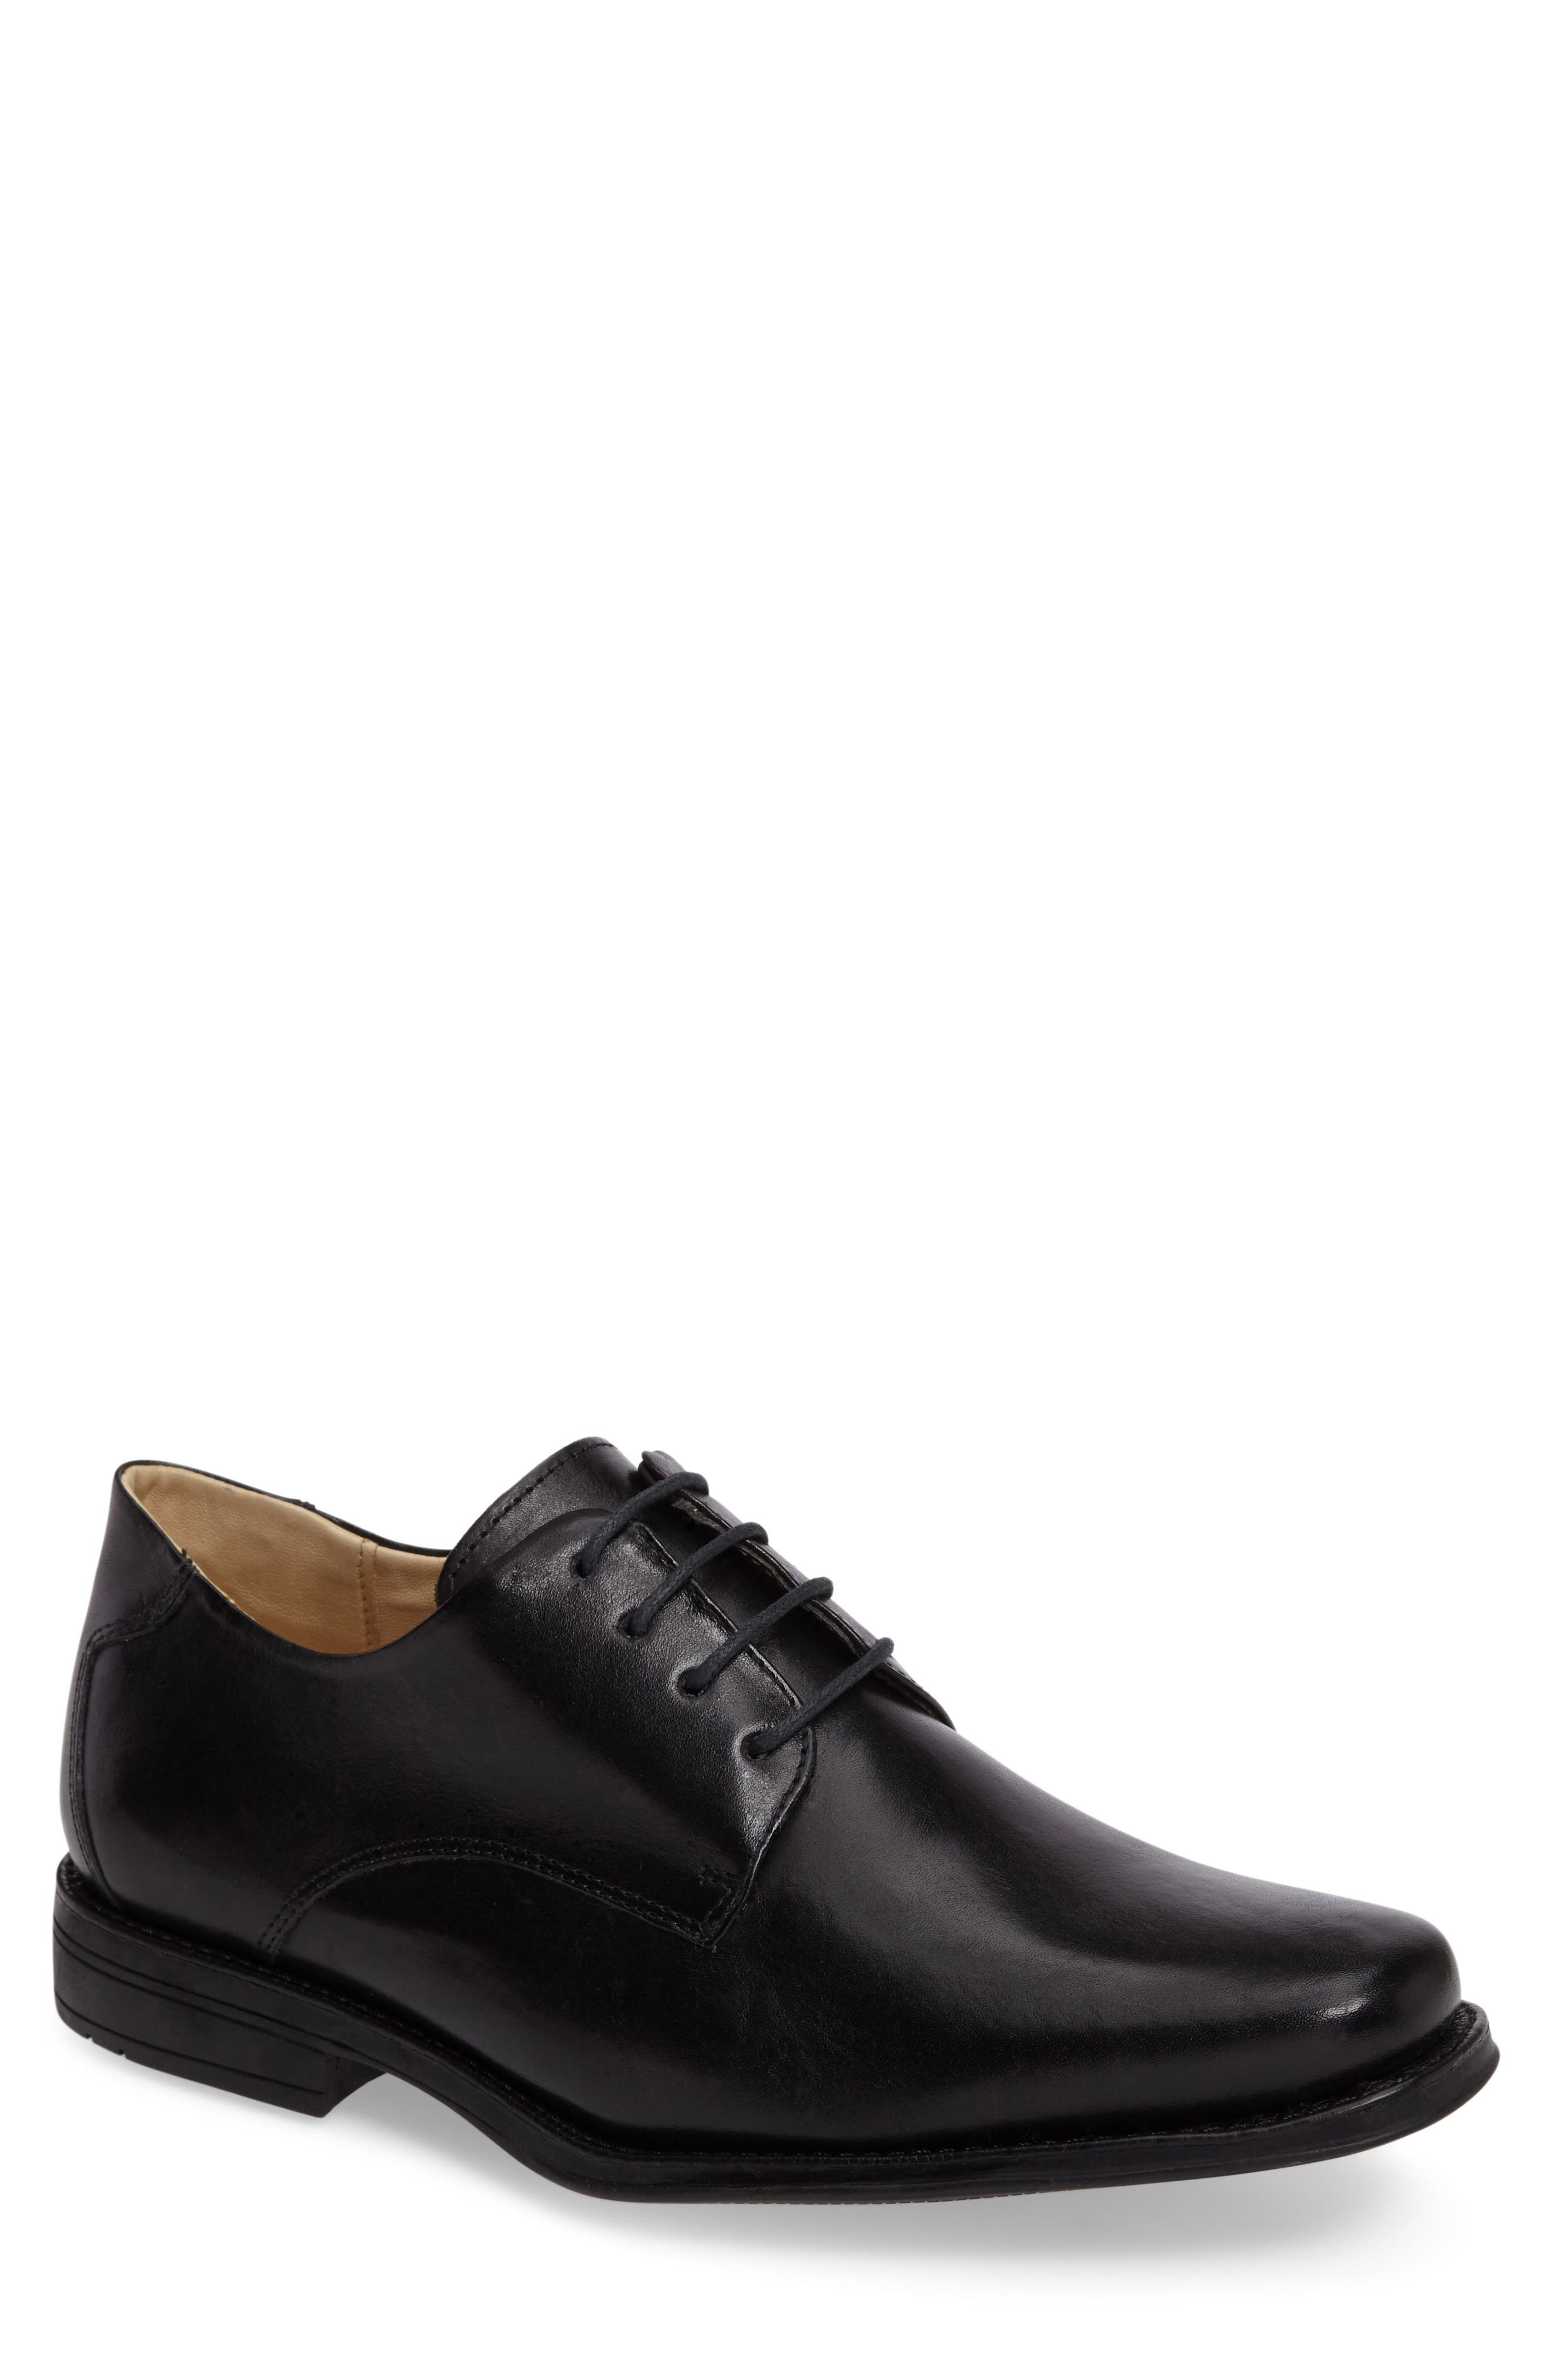 Anatomic & Co. Leme Plain Toe Derby (Men)